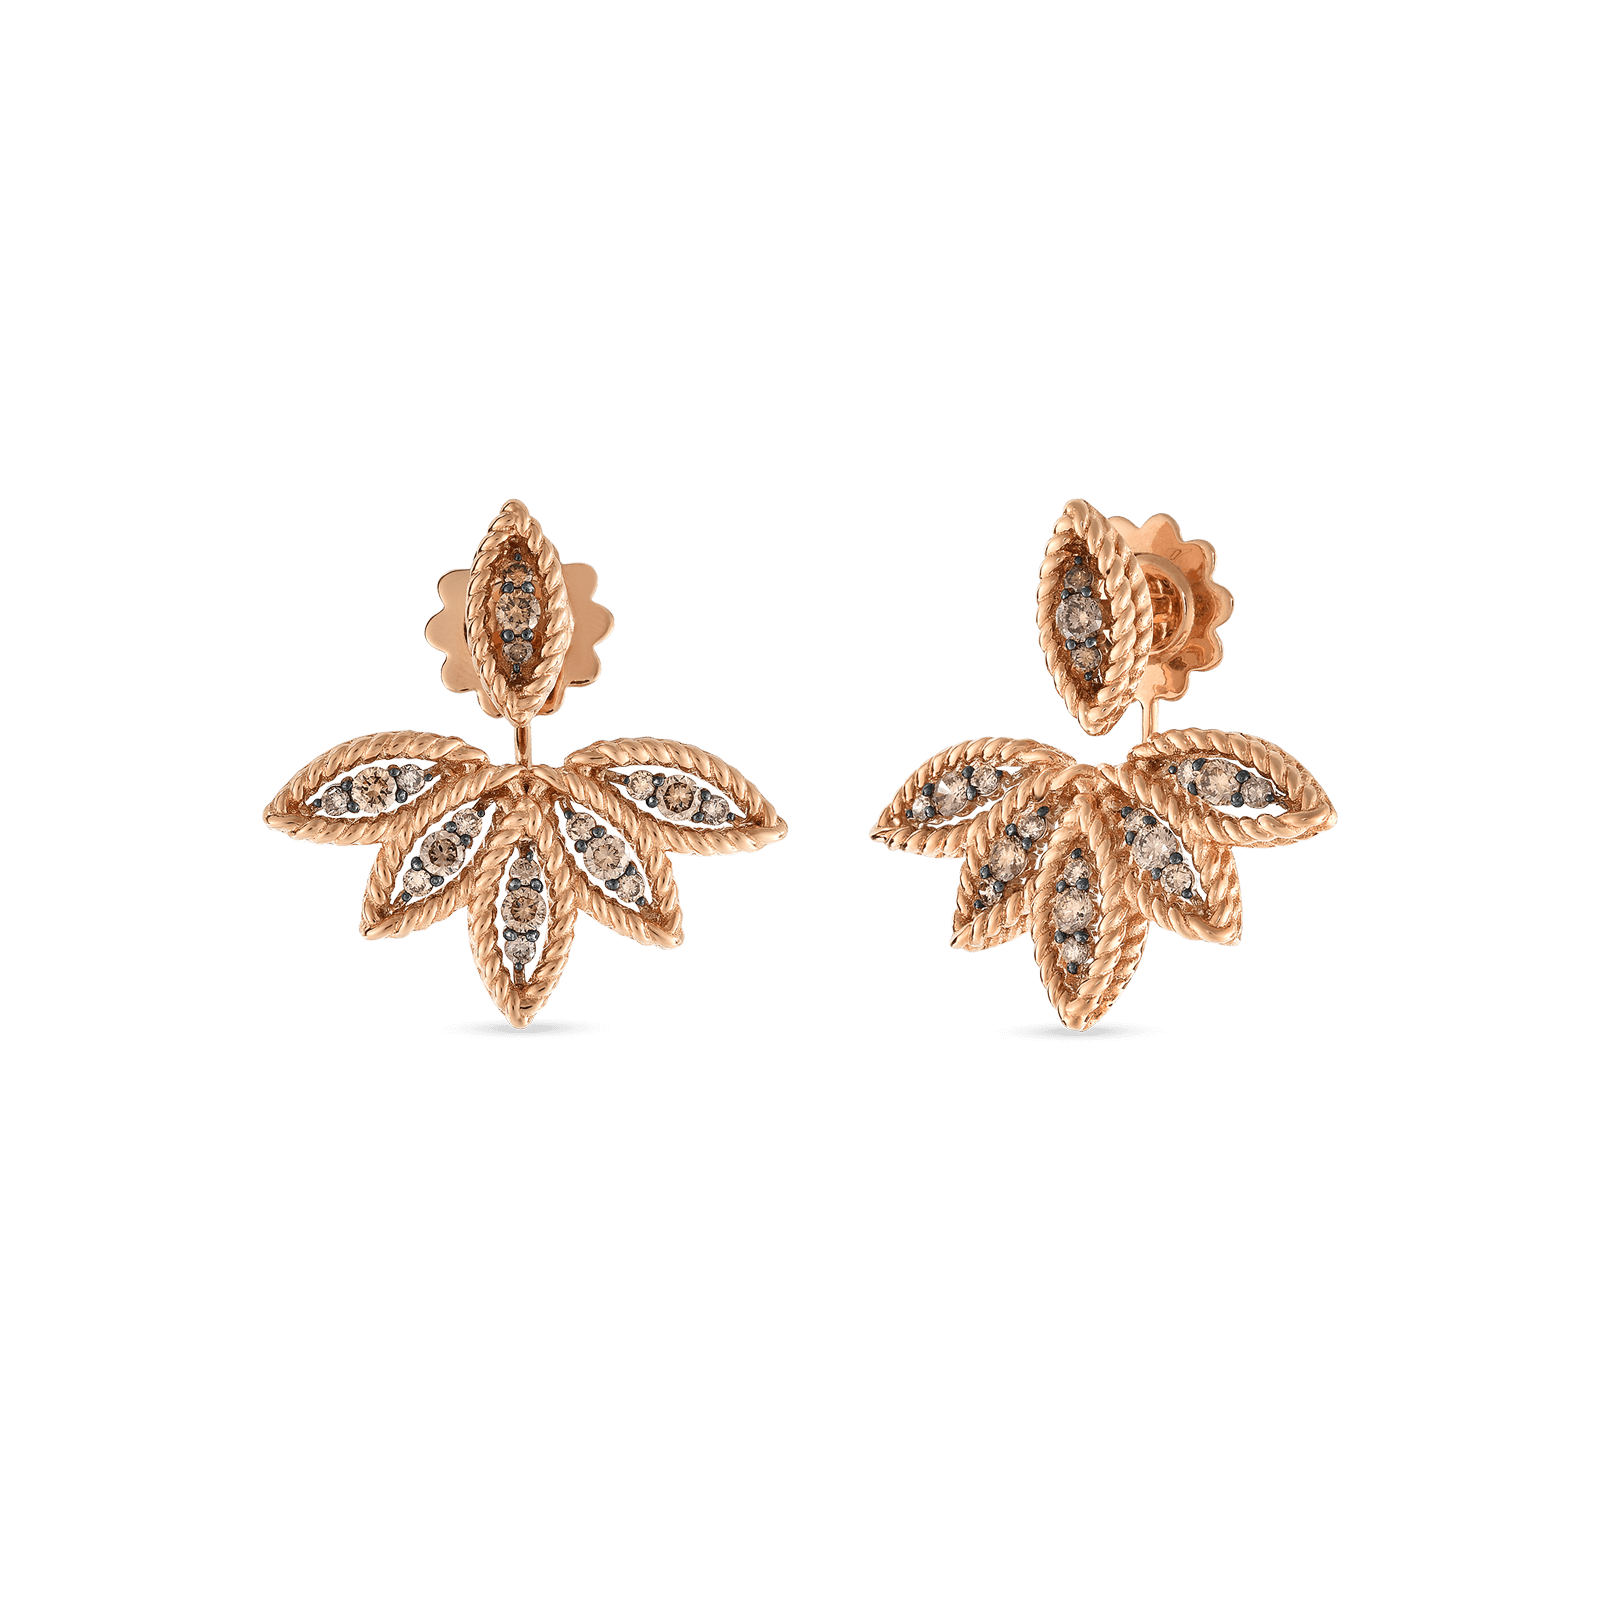 watches shipping auriya earrings stud jewelry gold brown today free tdw overstock to product diamond prong white